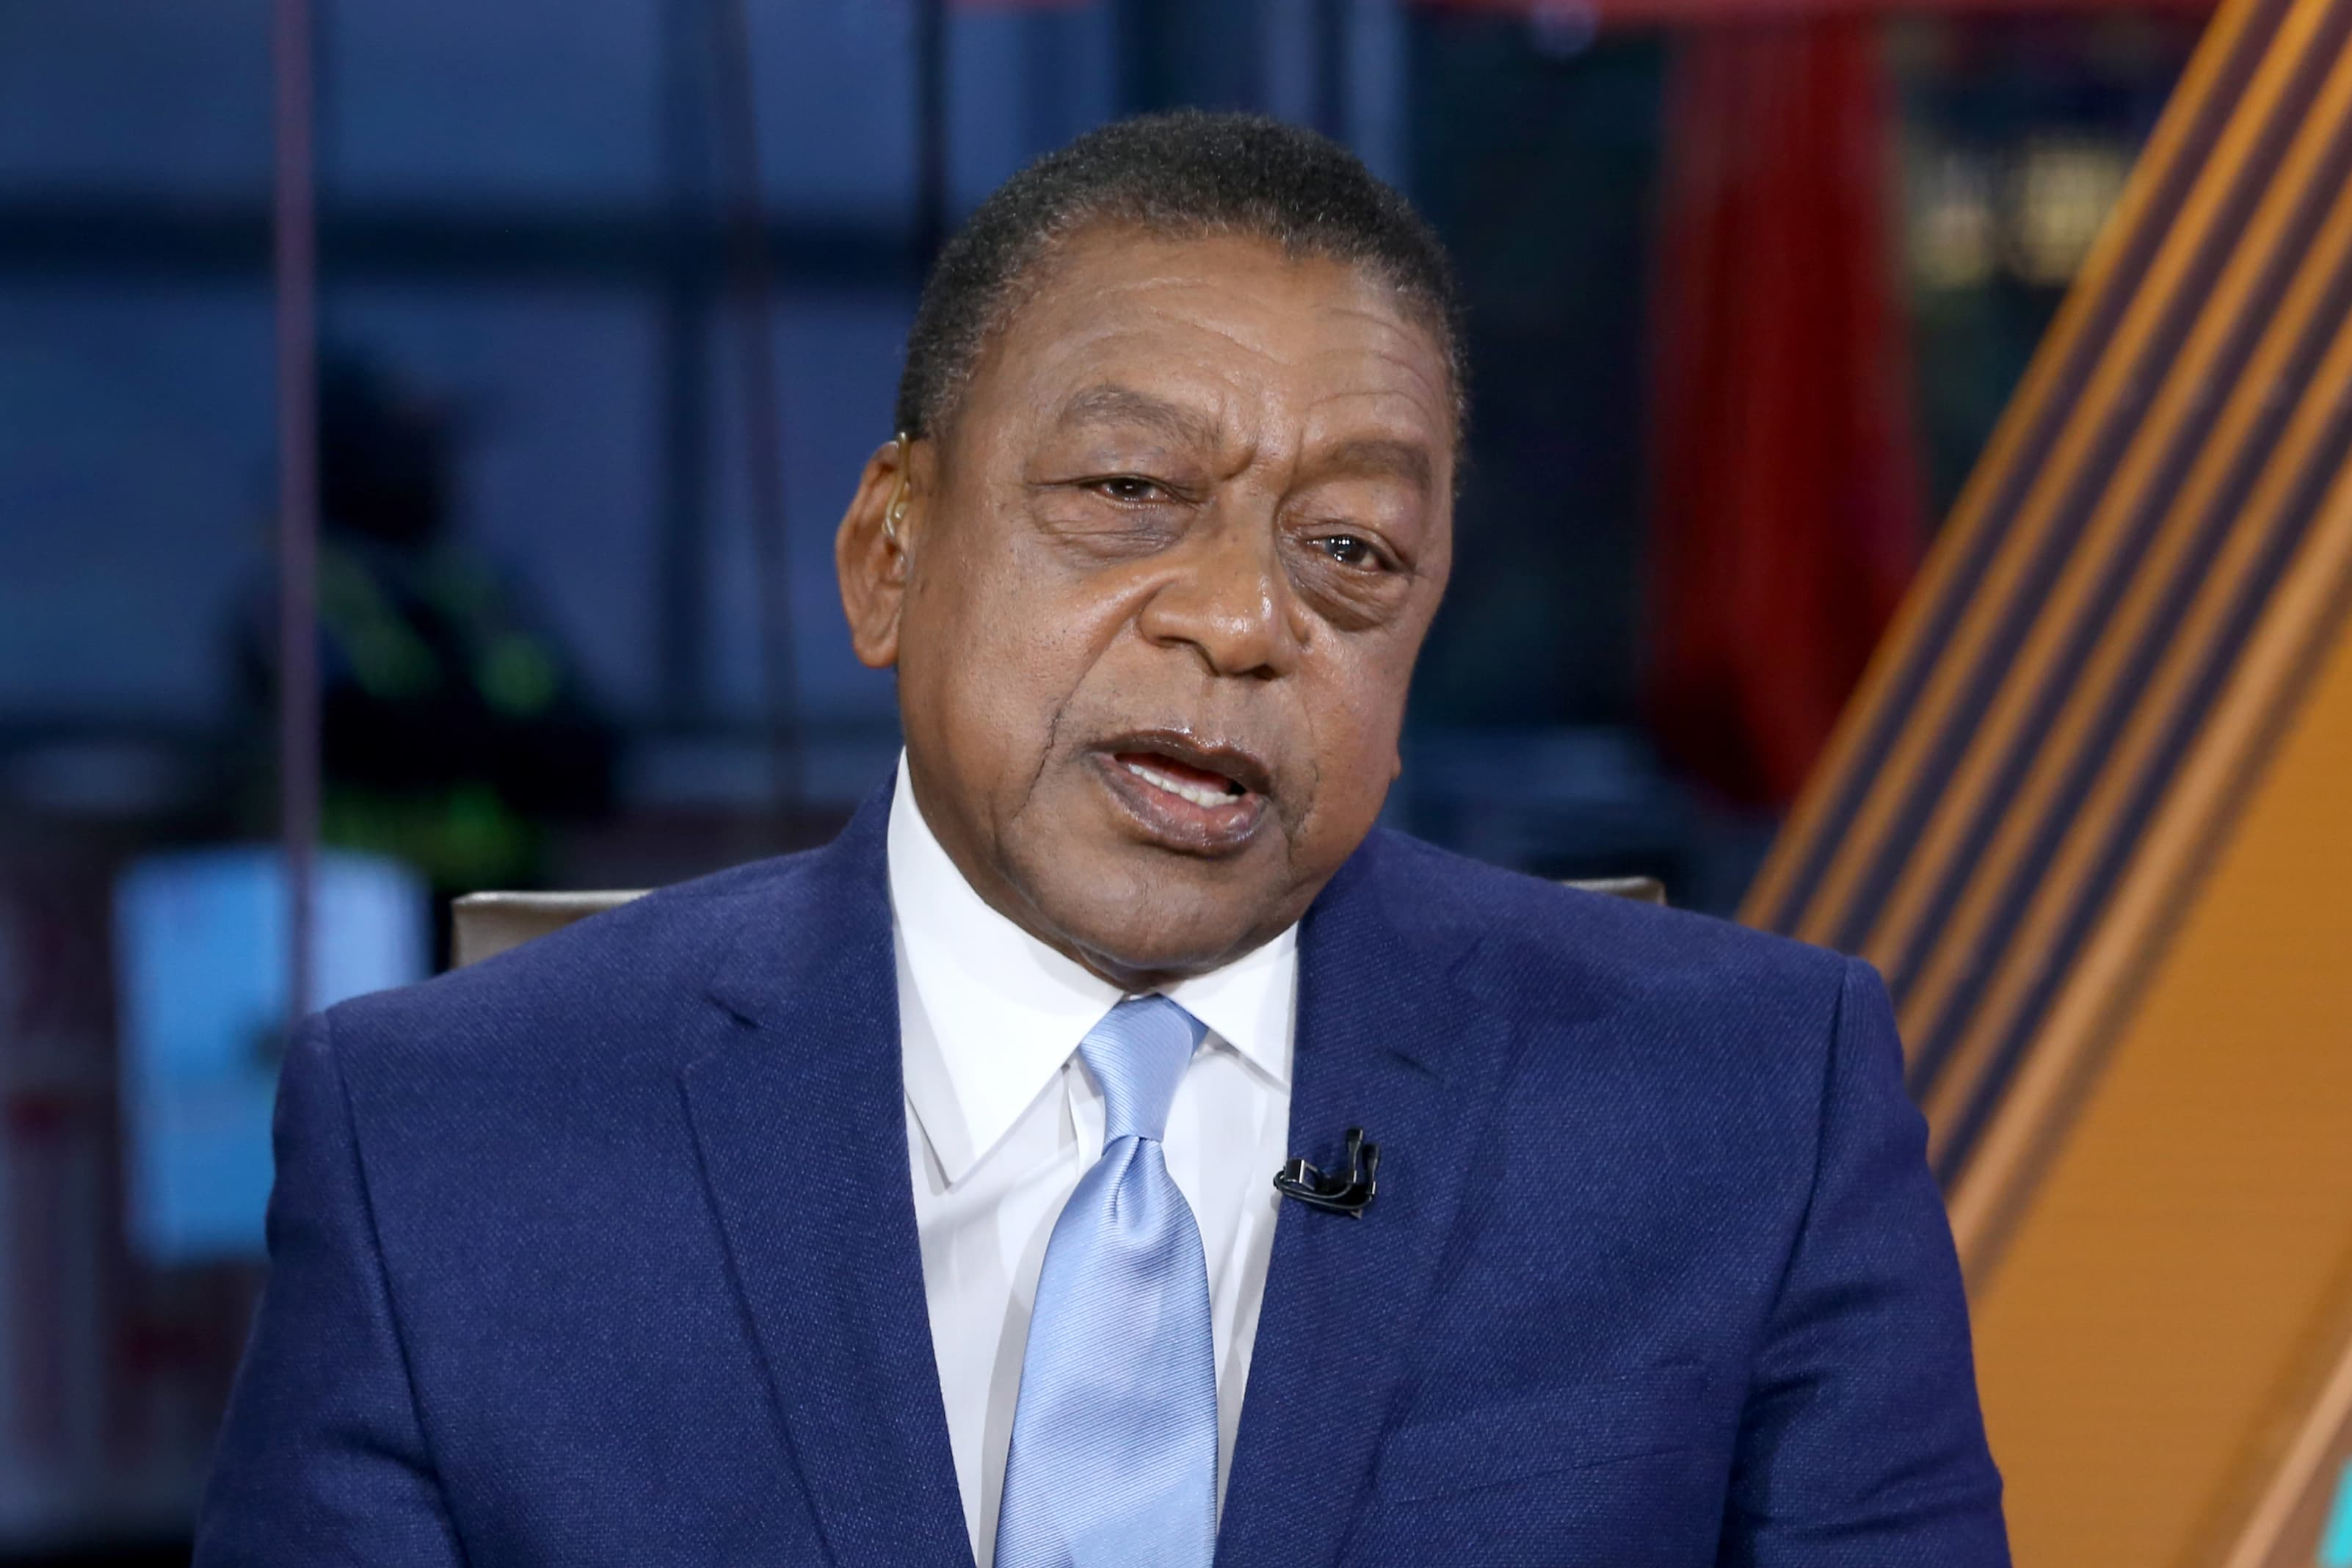 Robert Johnson calls on firms to put voting rights energy into capital access for Black Americans